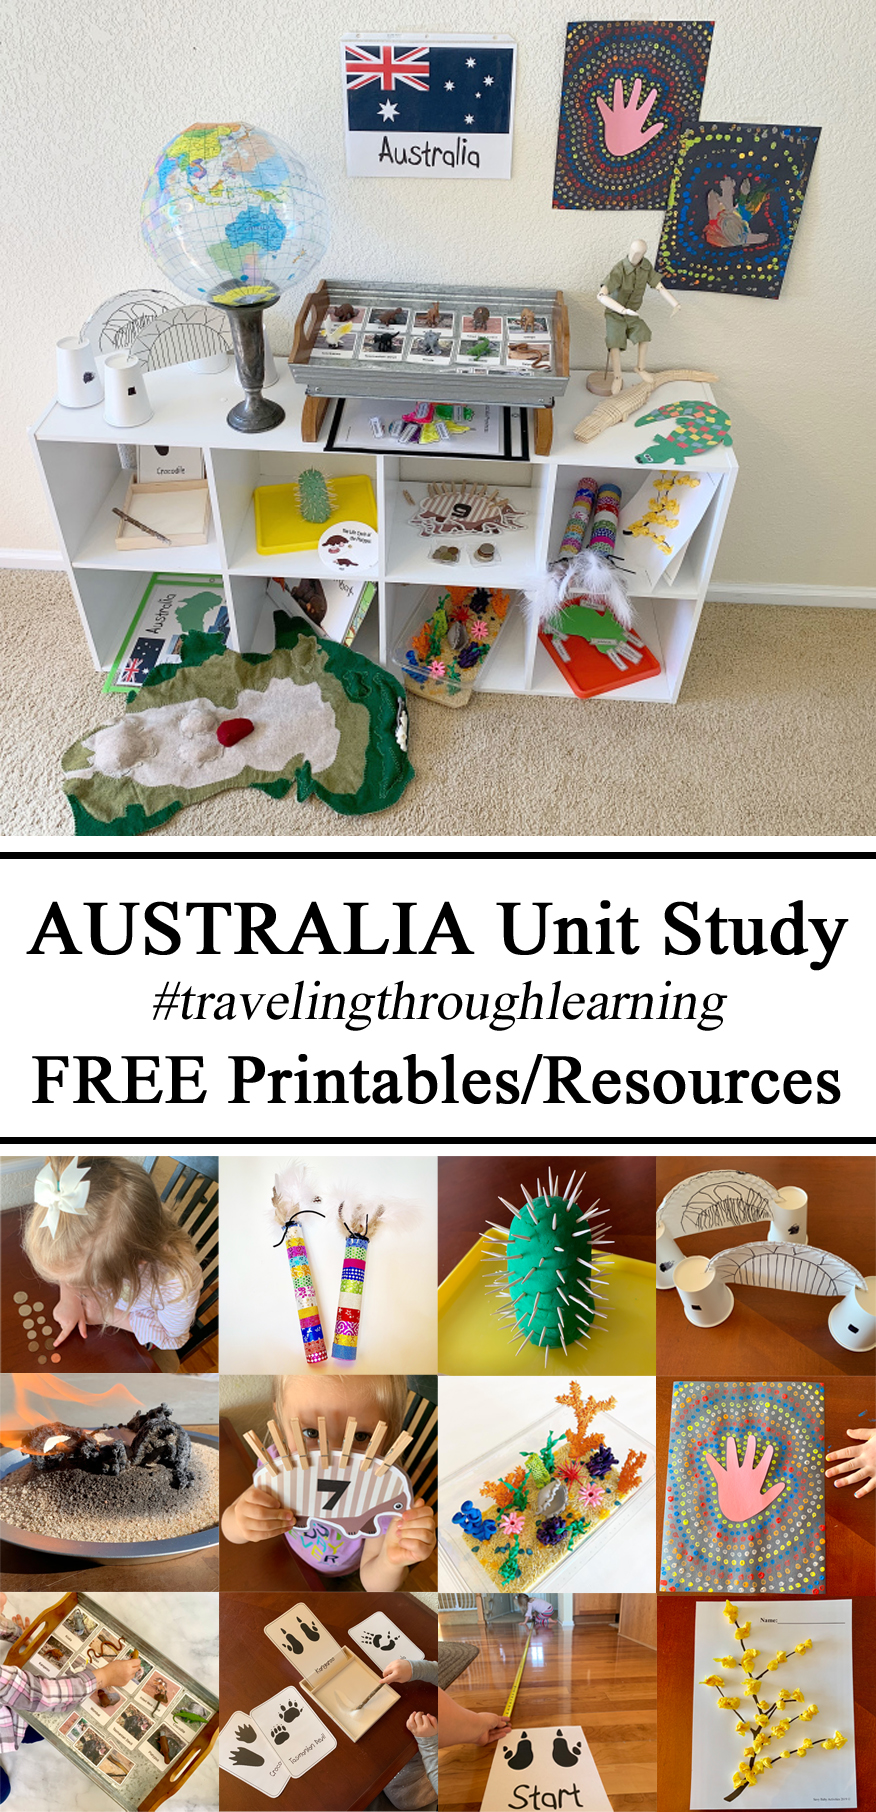 Homeschool, Homeschooling, Australia Day Unit Study, Waldorf, Preschool, Montessori Shelves Shelf Hands on Learning Culture through Play Travelingthroughlearning, Country Themed Activities, Educational Kindergarten, Pre-K, Fauna, Flora, Resources, Printables, FREE Download, Geography